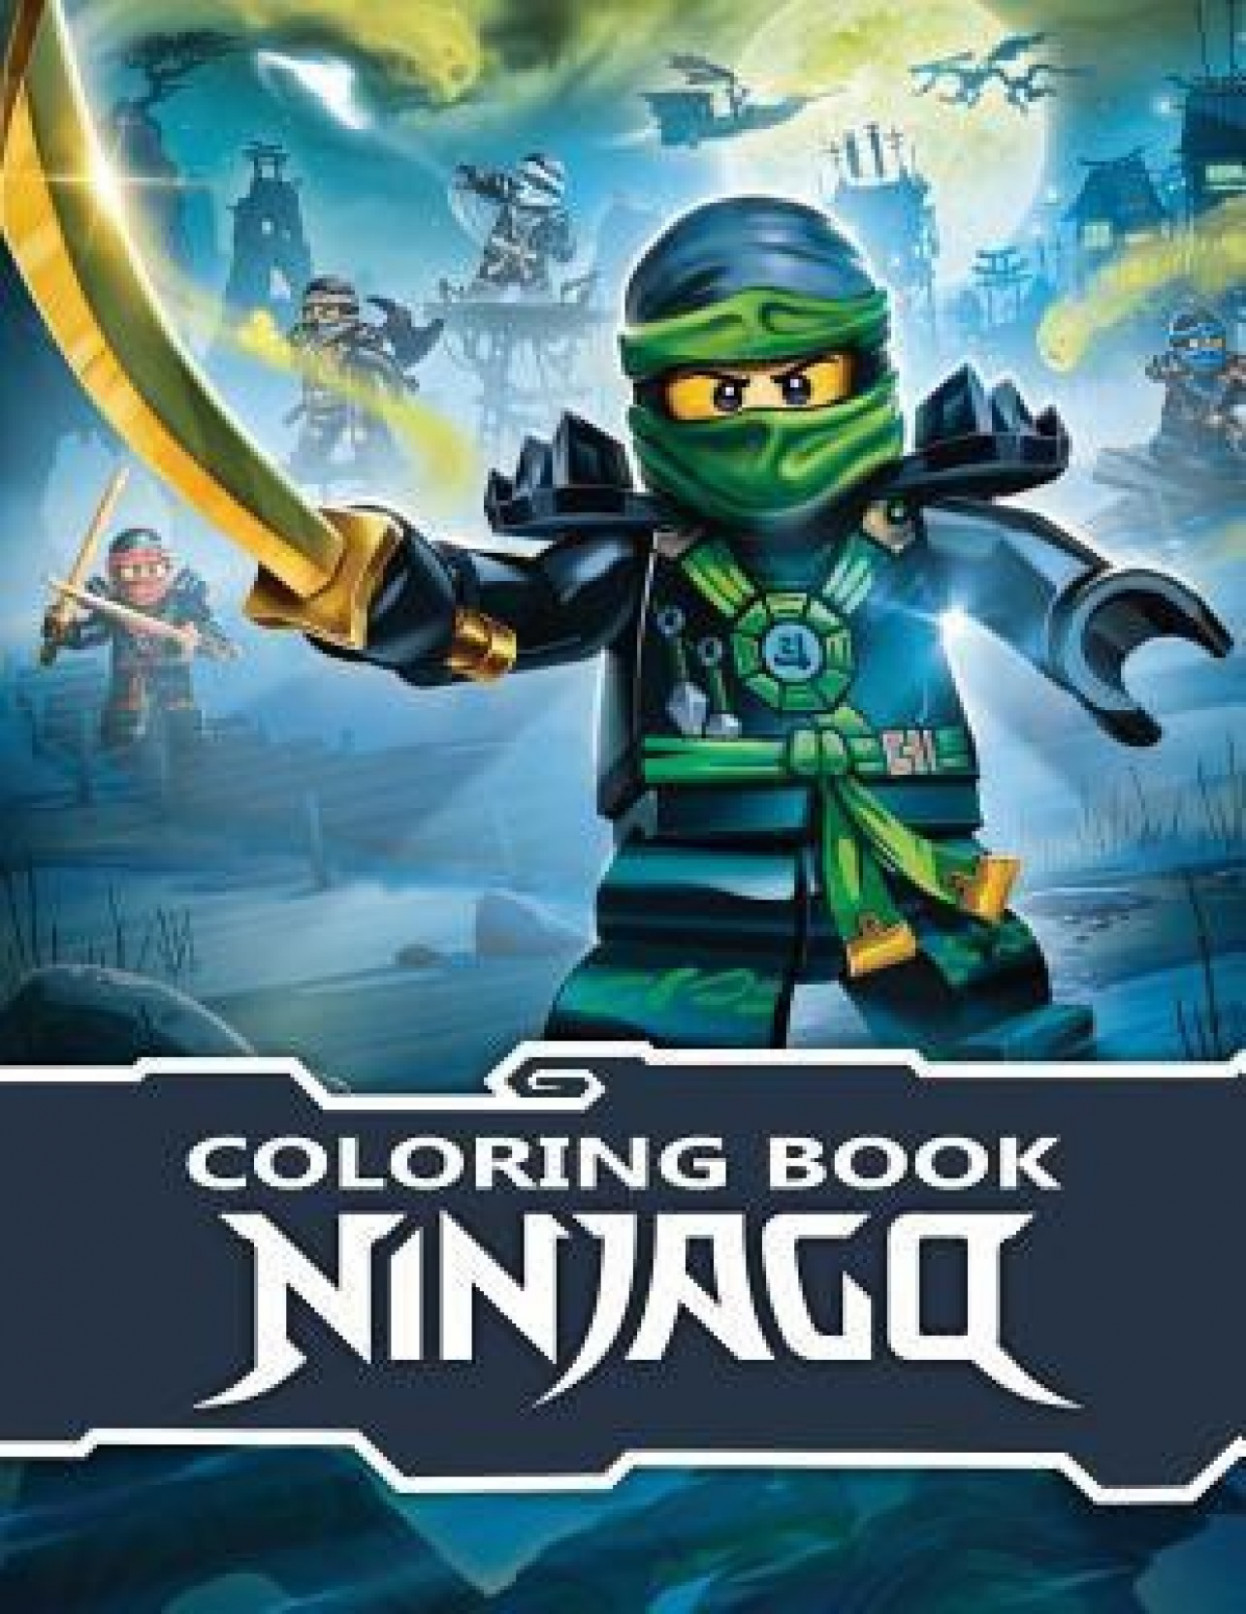 Ninjago Coloring Book: Buy Ninjago Coloring Book by Paradise Books ...